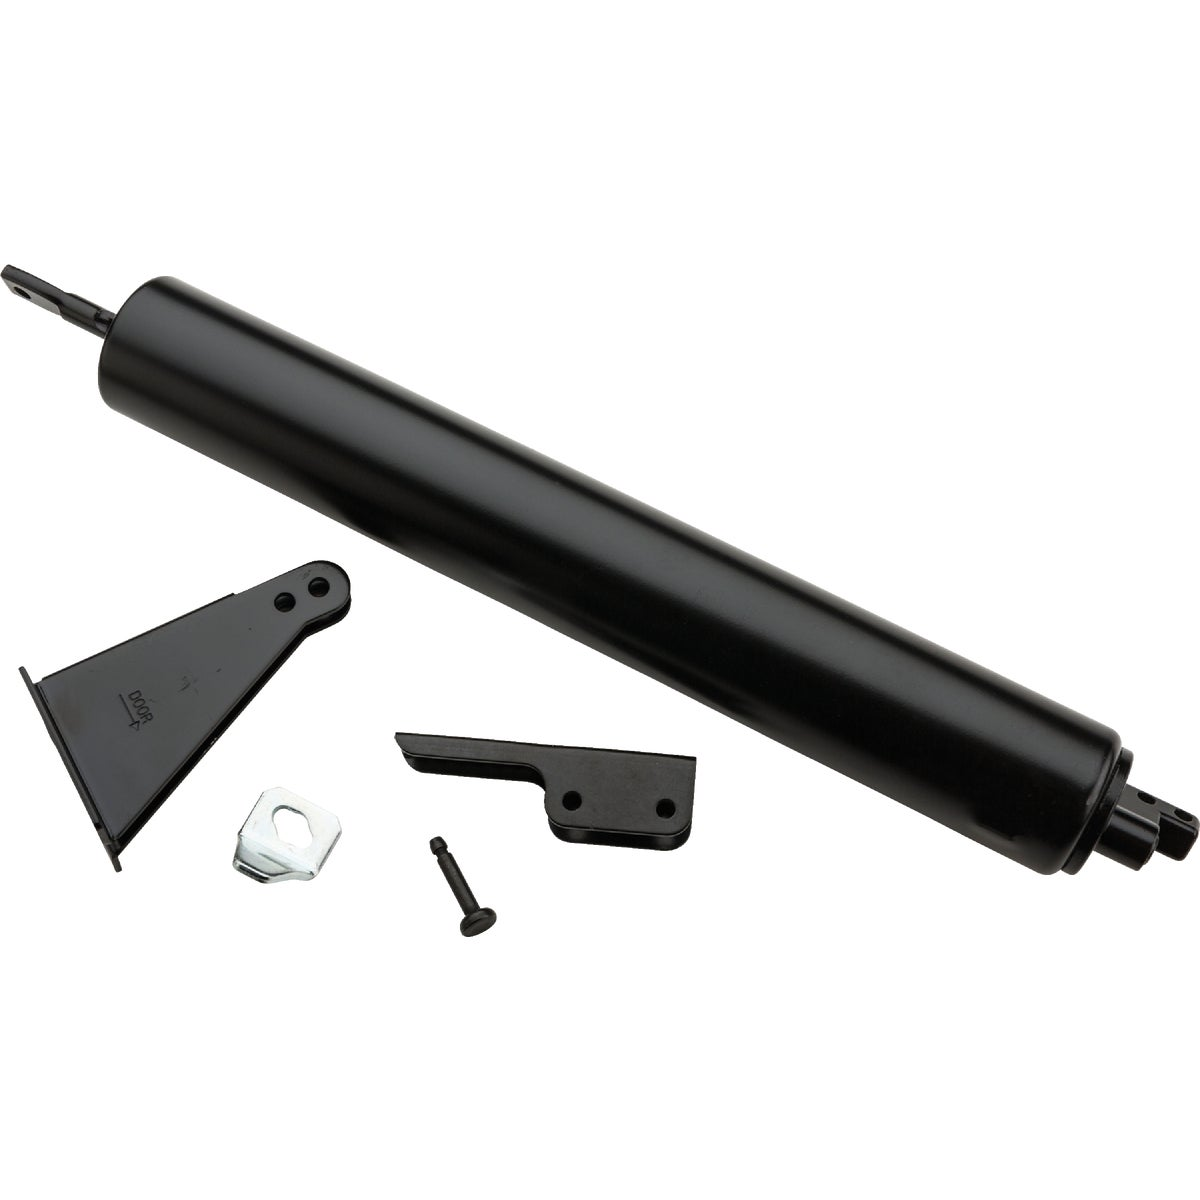 BLK H/DUTY DOOR CLOSER - V150BL by Hampton Prod Intl